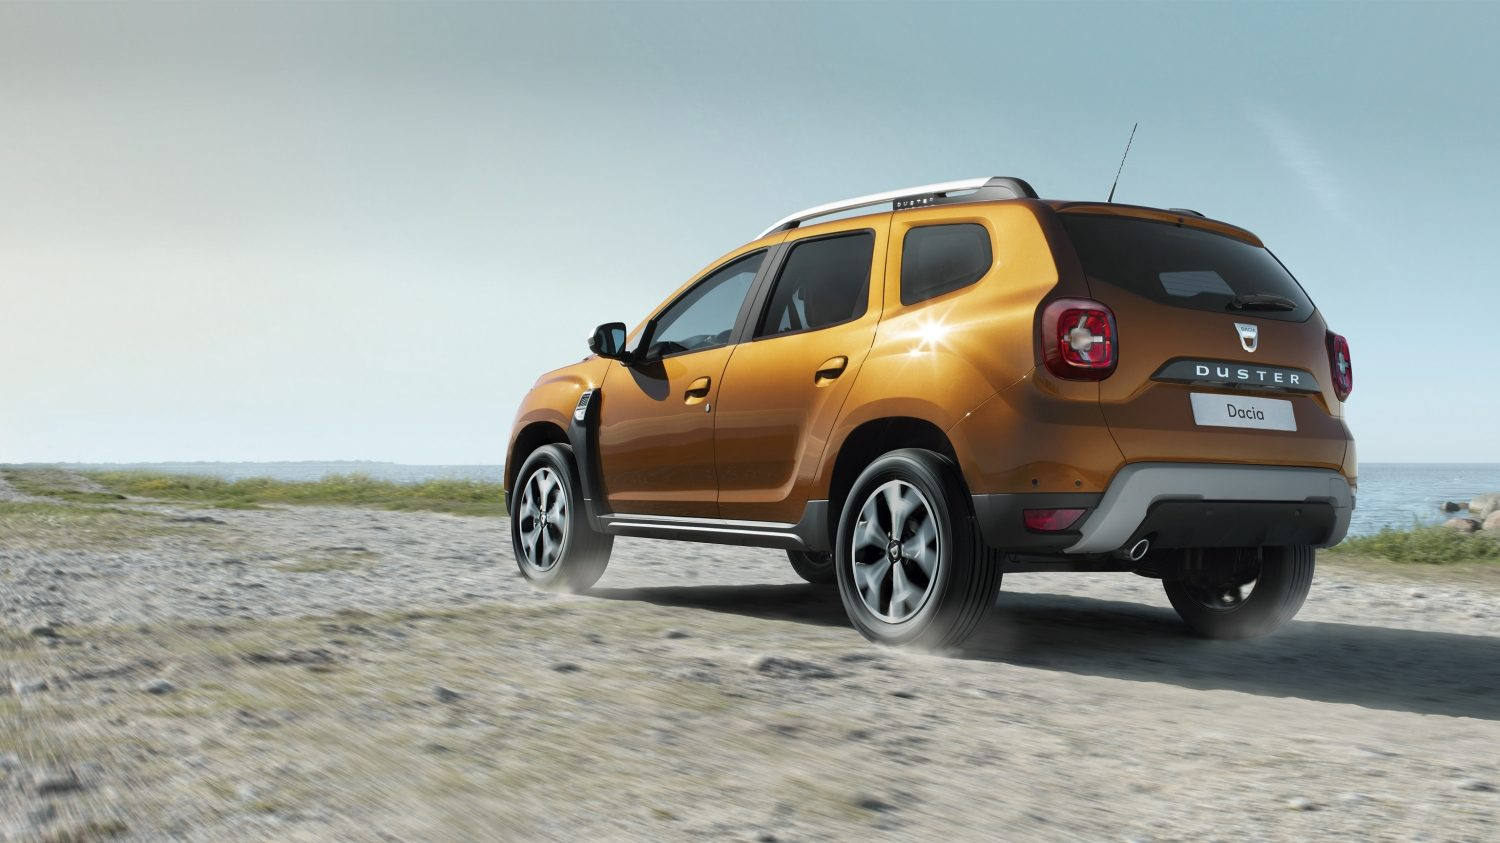 dacia-duster-reveal-004.jpg.ximg.l_full_m.smart